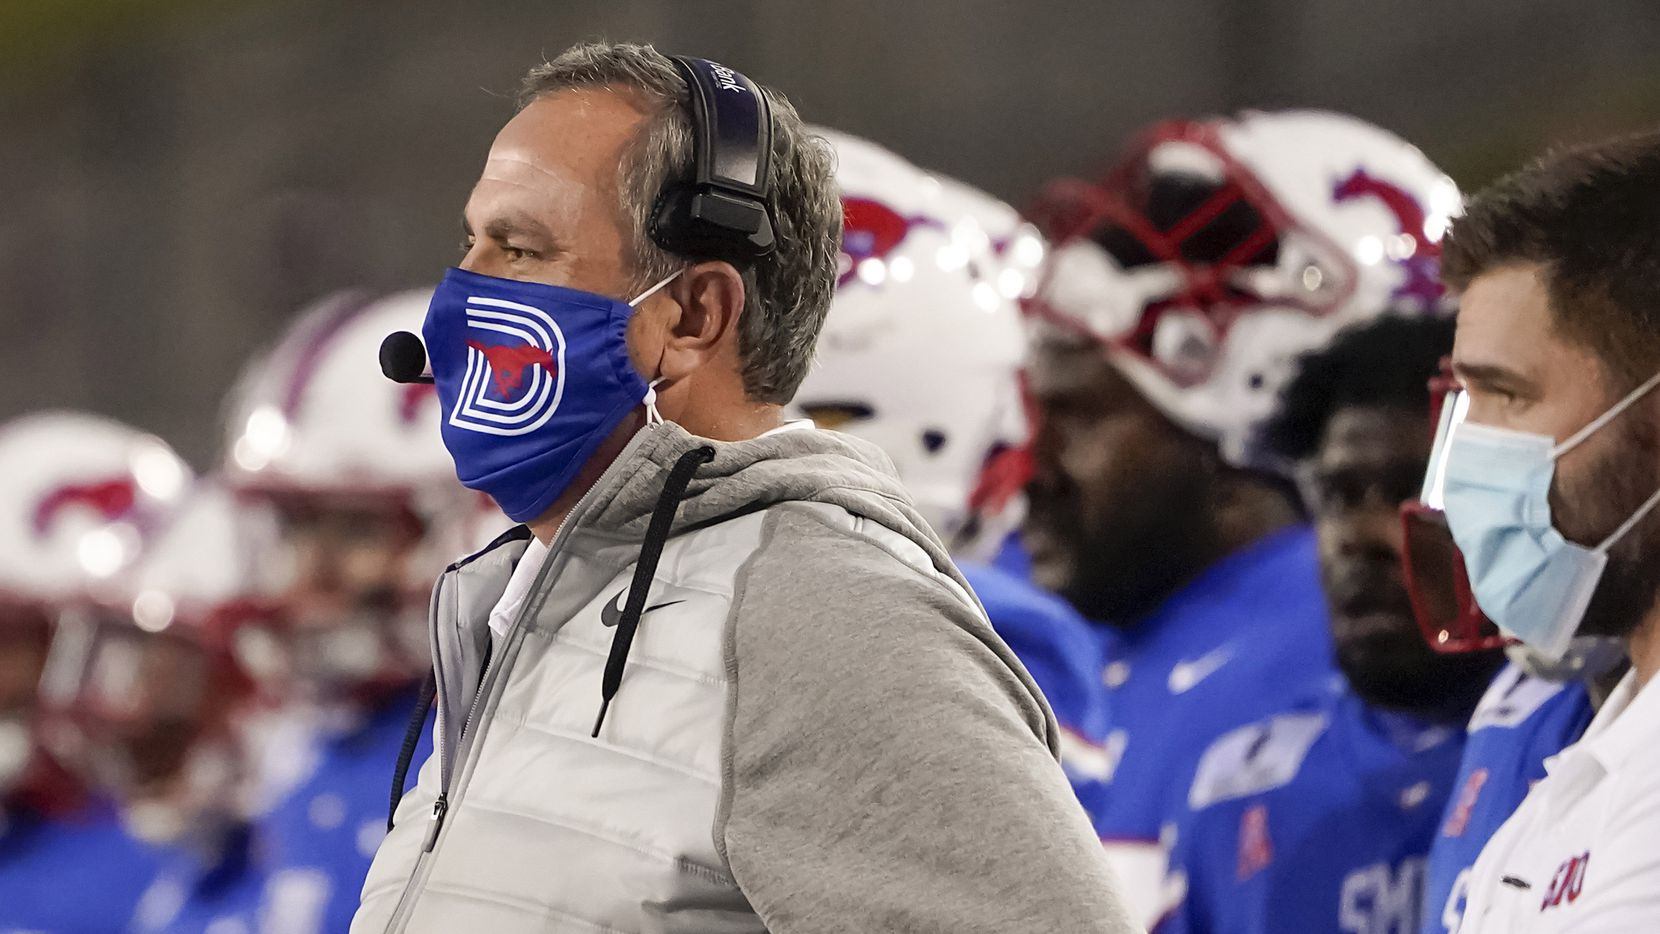 SMU head coach Sonny Dykes watches from the sidelines during the first quarter of an NCAA football game against Navy at Ford Stadium on Saturday, Oct. 31, 2020, in Dallas.